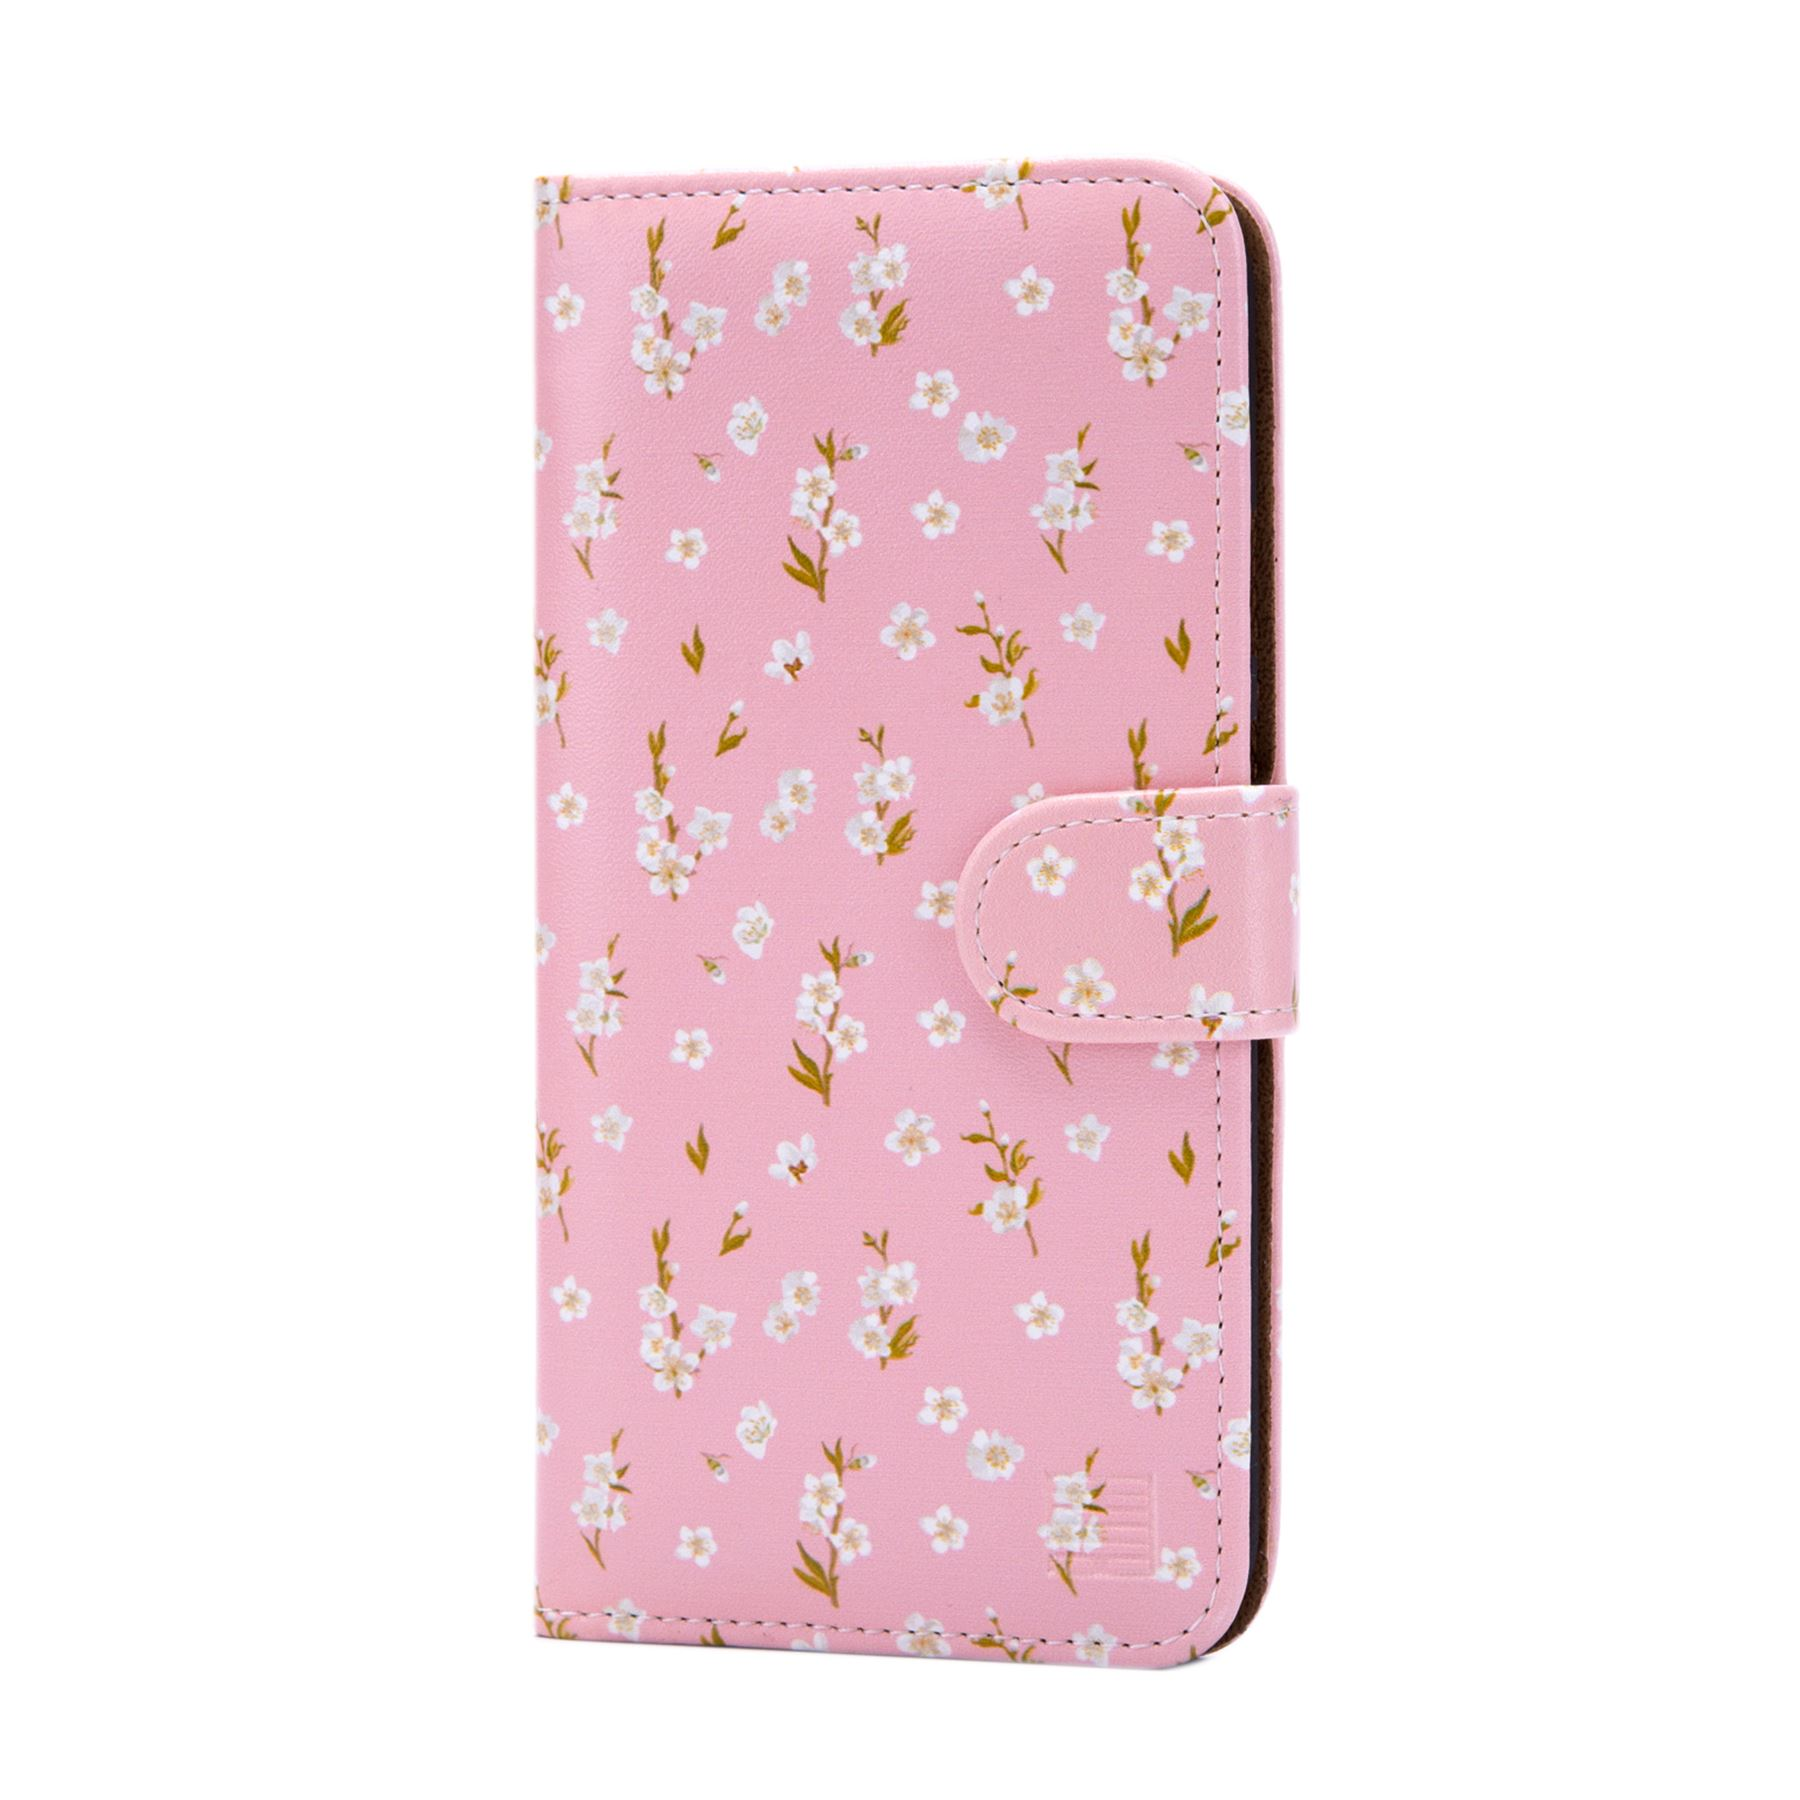 PU-Leather-Floral-Design-Book-Wallet-Case-Cover-For-Google-Pixel thumbnail 26